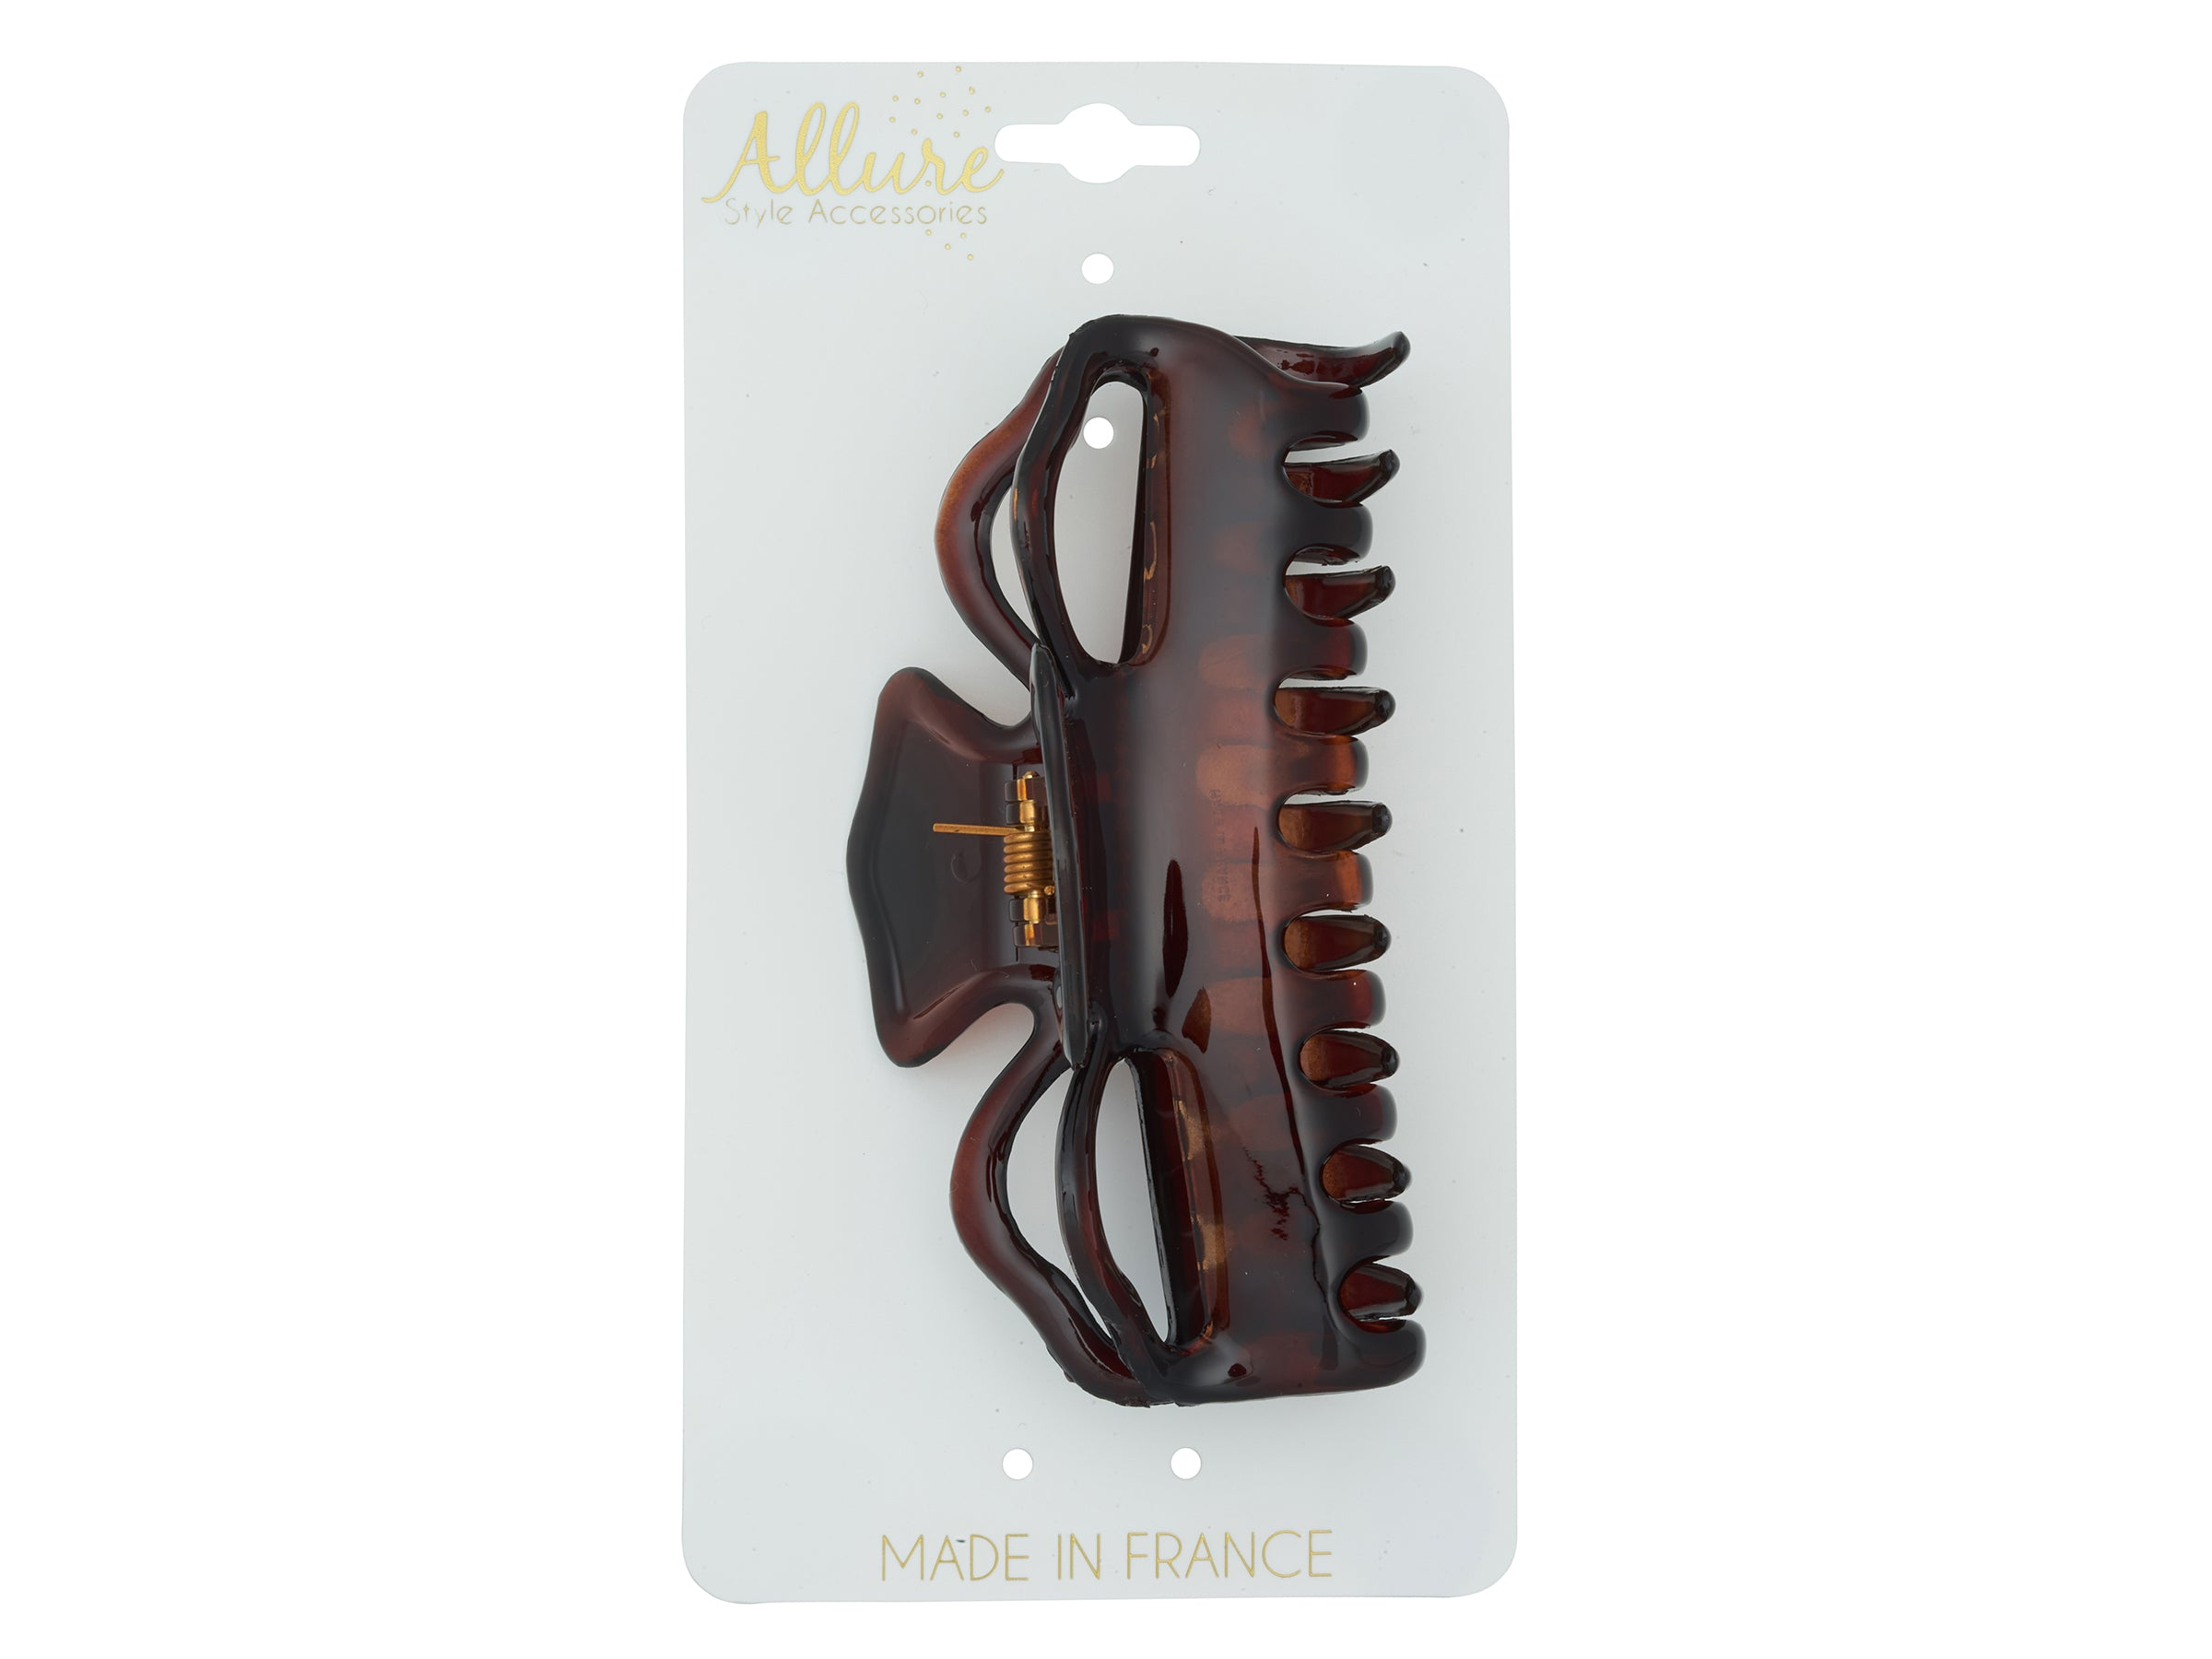 Allure Jumbo Jaw Clips